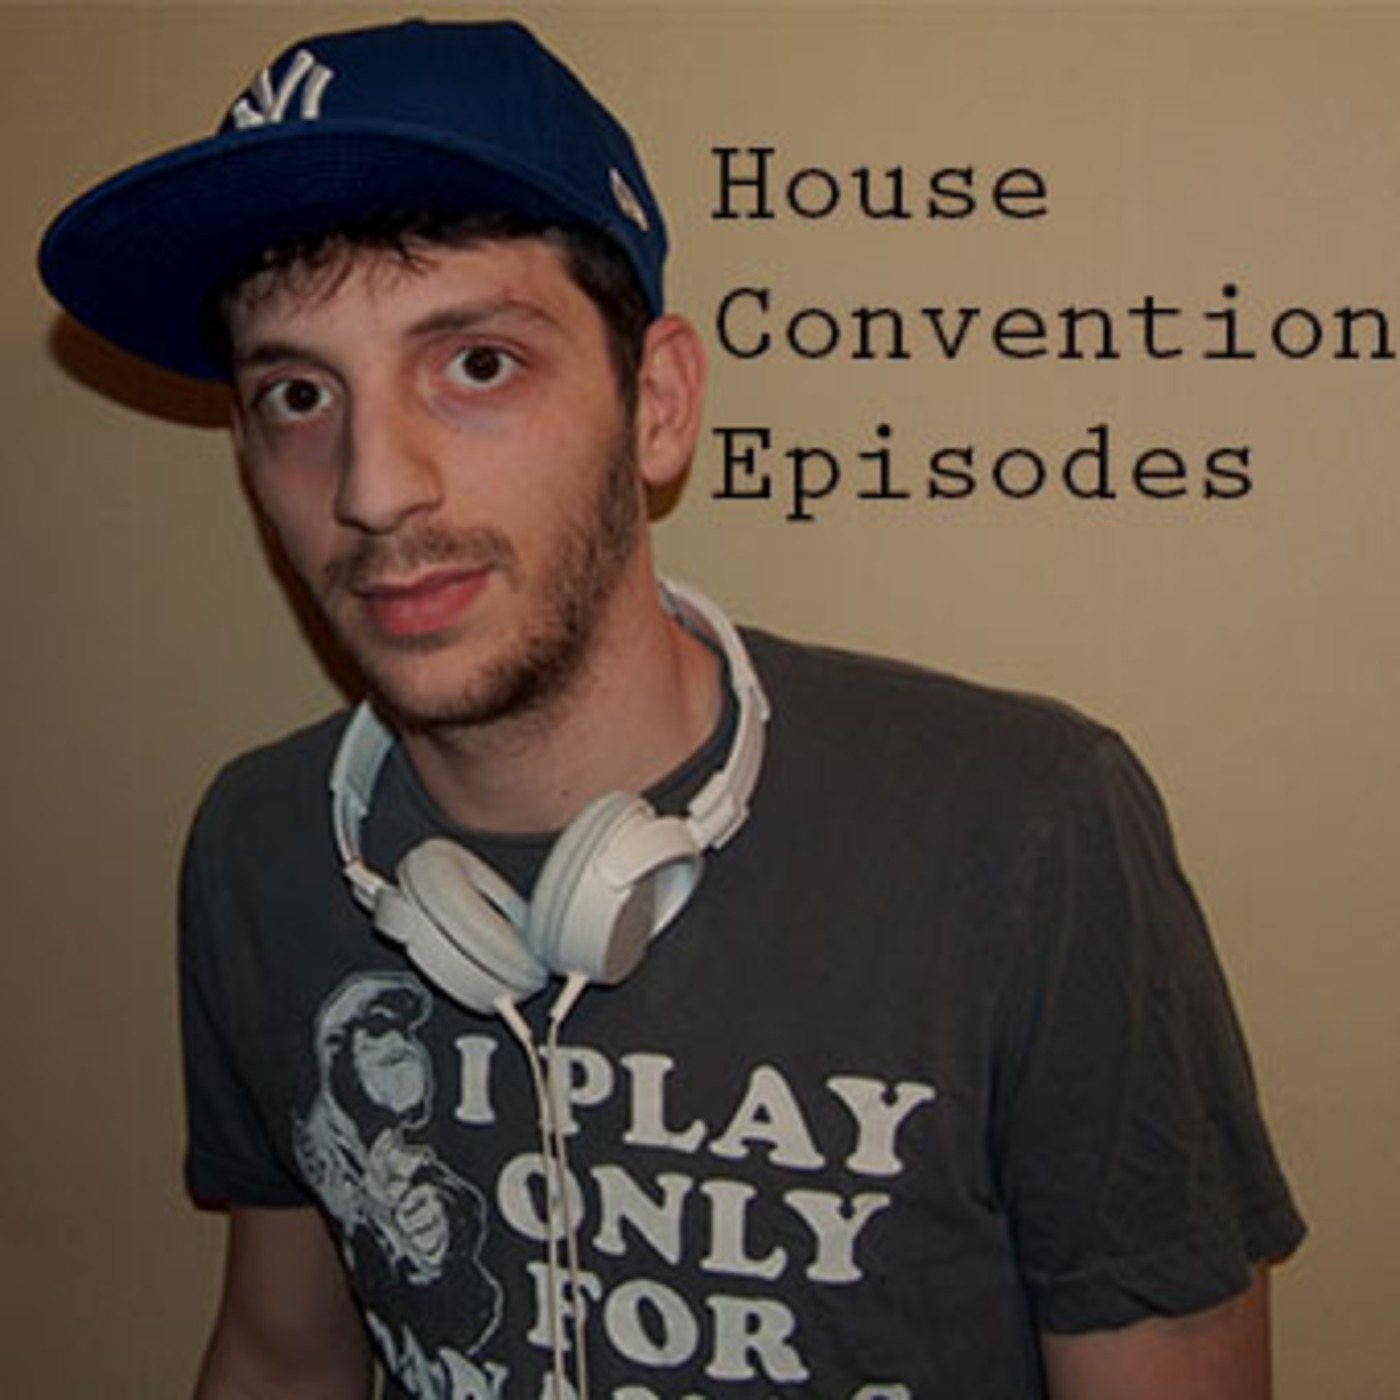 House convention Episodes